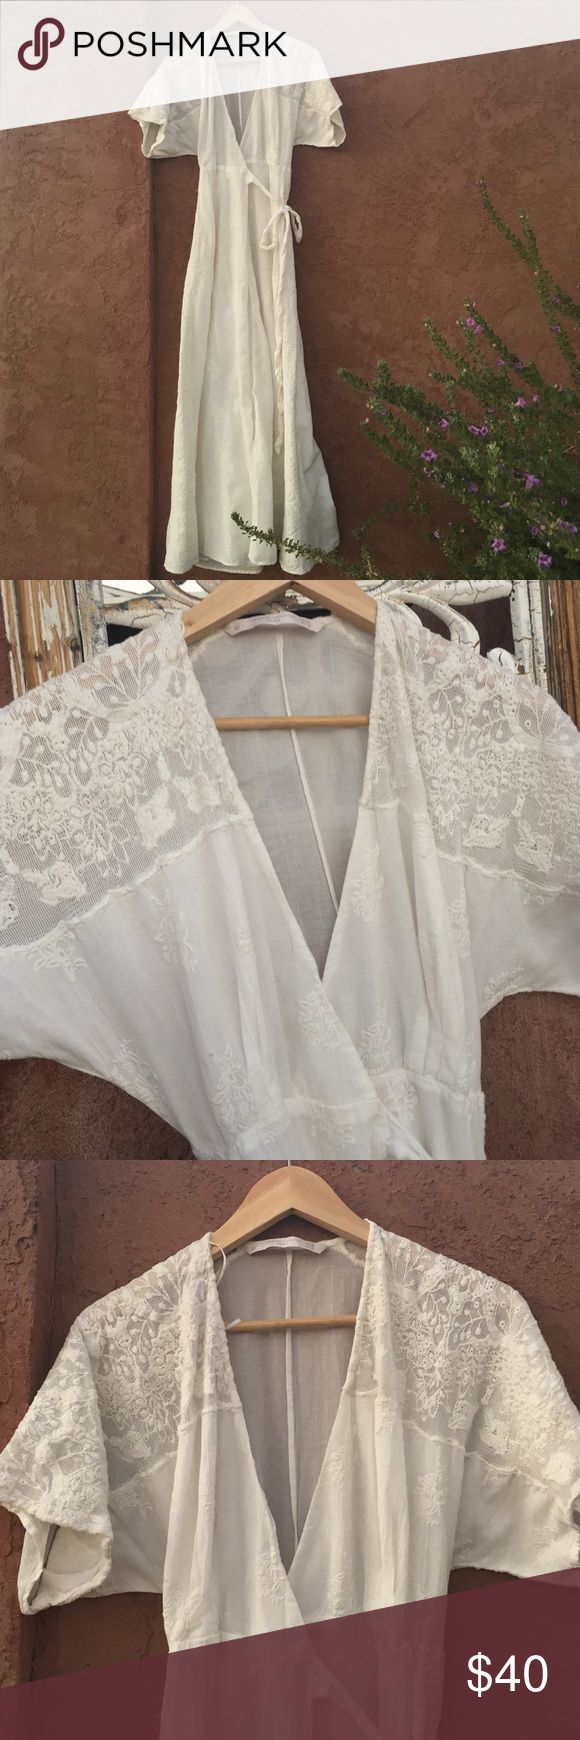 Zara Cream Dress-Ready for Coachella! Gorgeous Zara Trafaluc Collection wrap dress. Can be worn as a robe, too! Small hole in the lace, near the back of the neck (noted in the pic). Perfect for your next festival! Zara Dresses